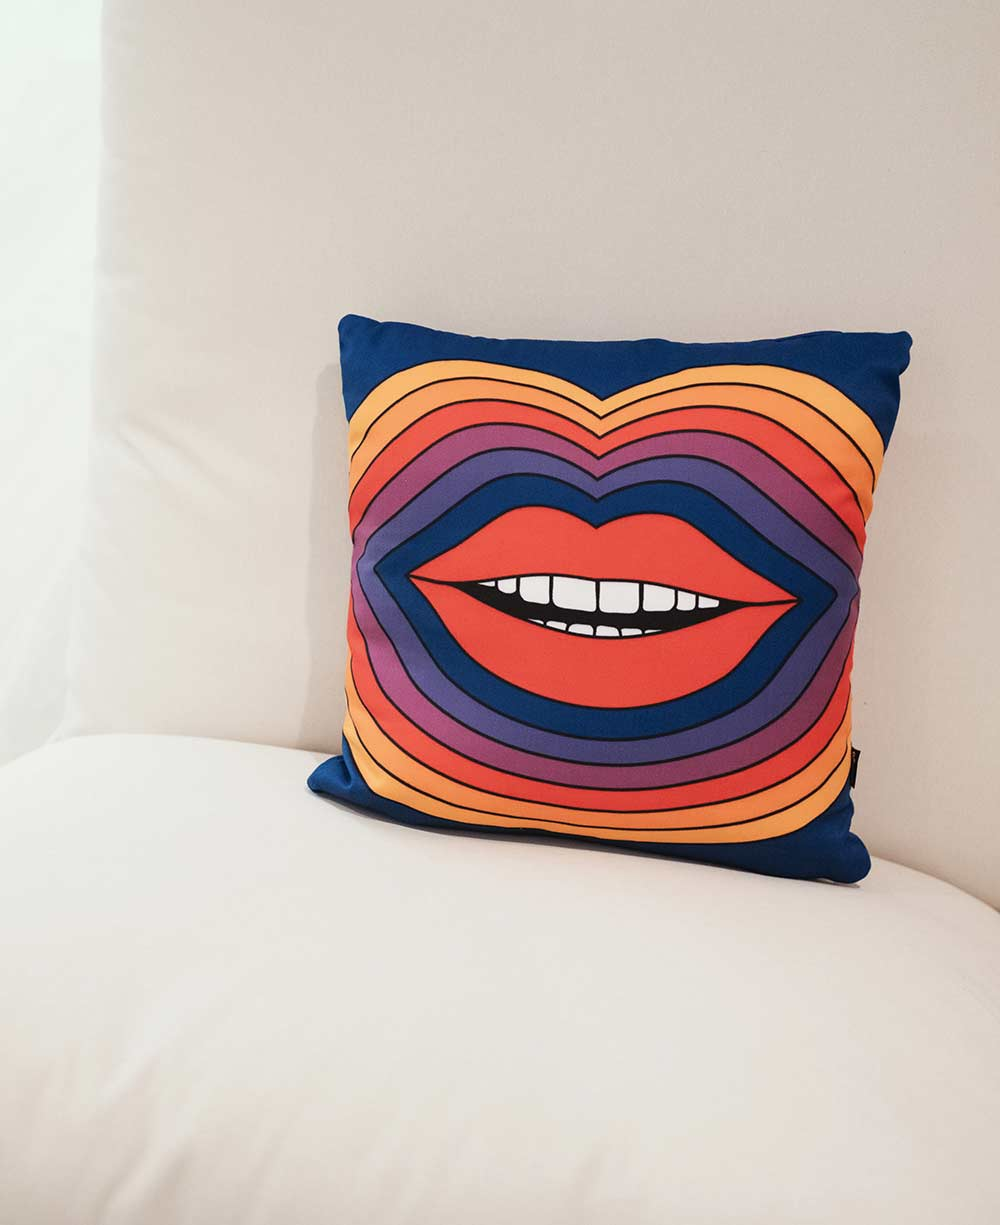 Photo of a pillow with a smile on it